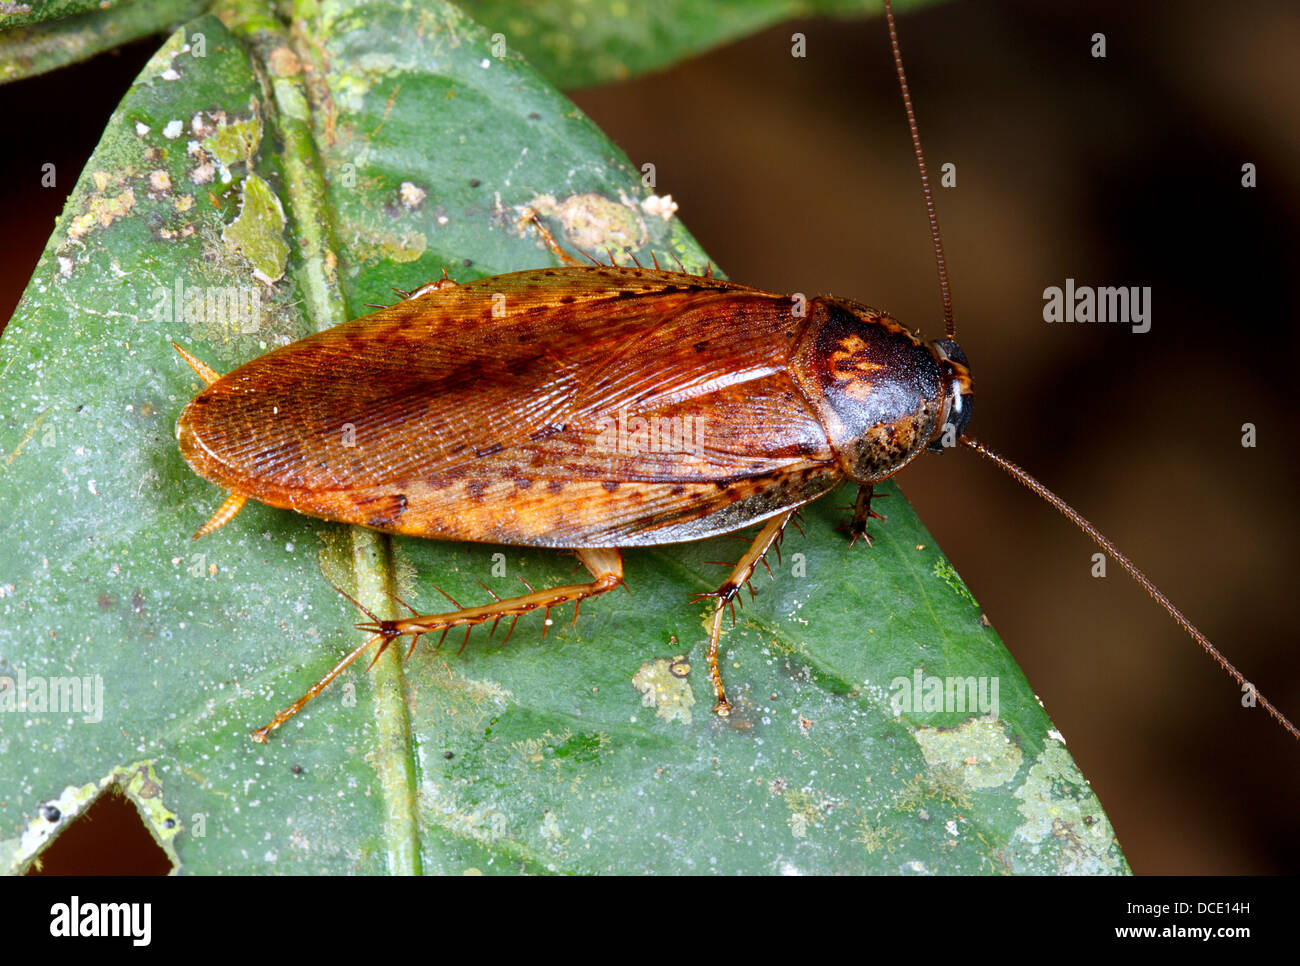 Tropical cockroach - Stock Image